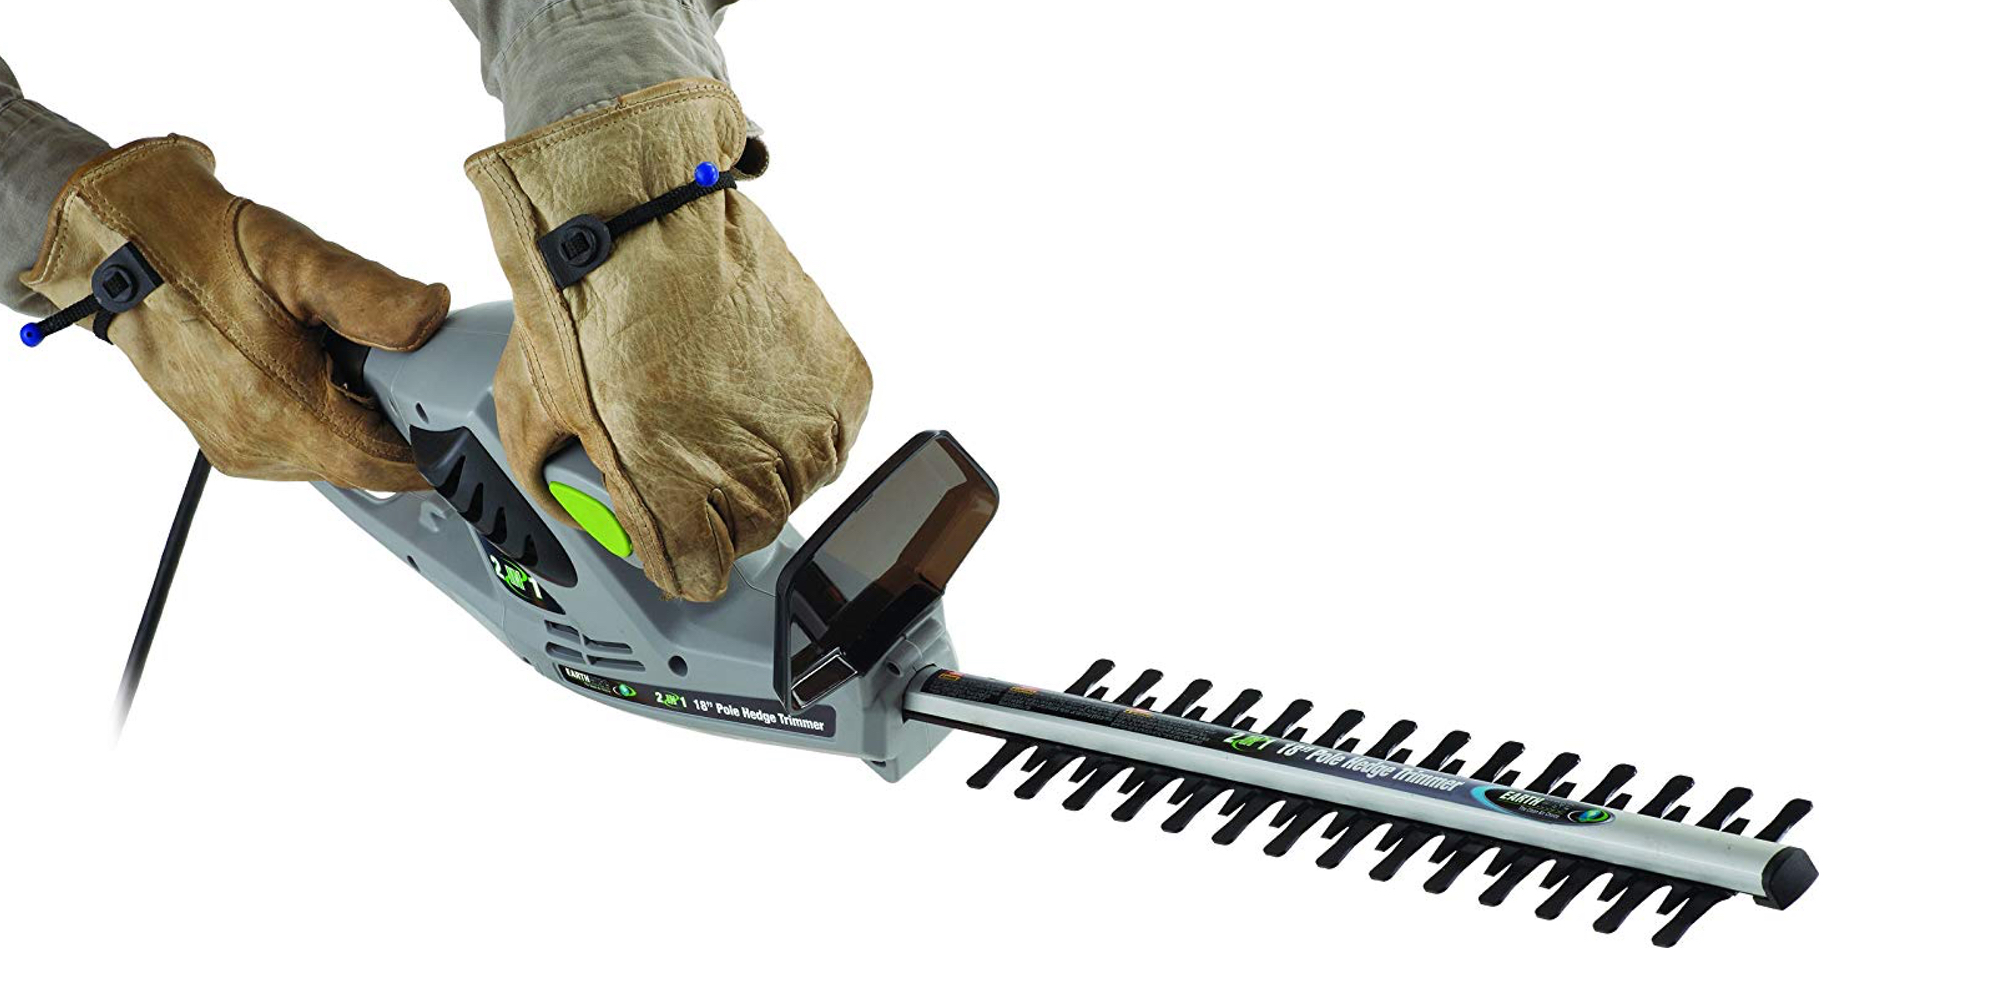 Earthwise's 18-inch Electric 2-in-1 Electric Hedge Trimmer hits new Amazon low at $28.50 (35% off)